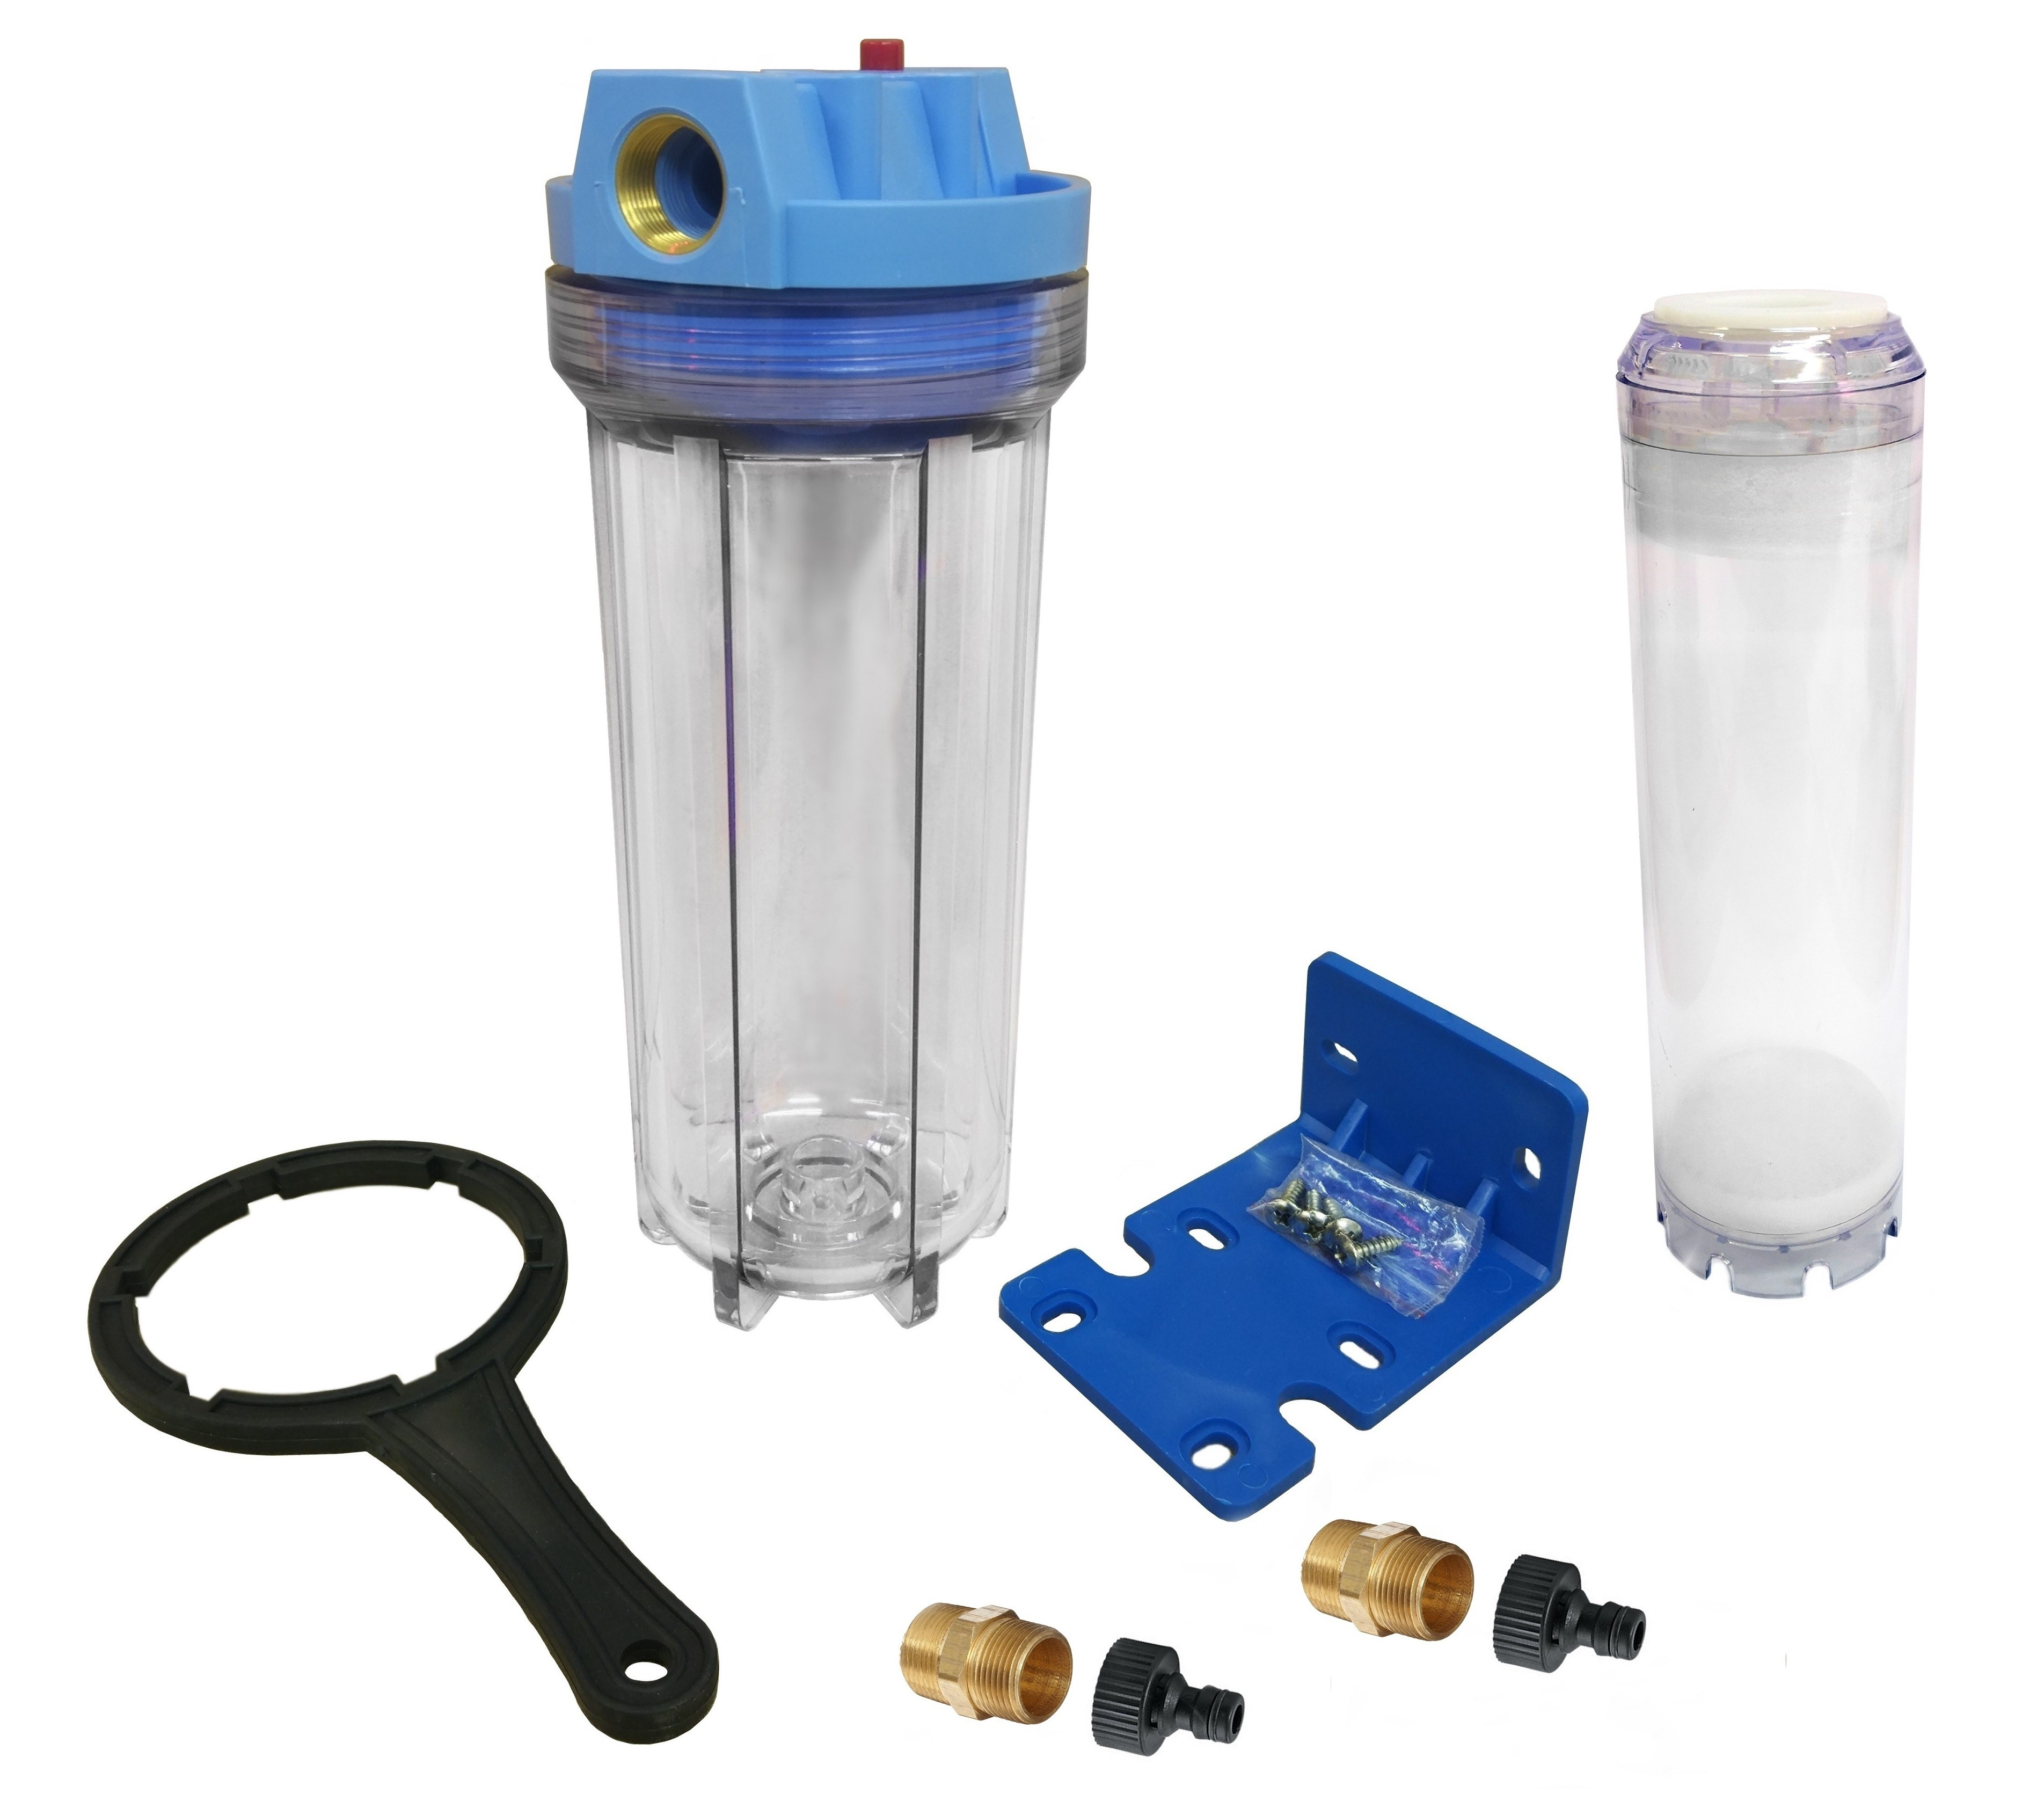 Finerfilters Fluidised Bed Filter, Phosphate Reactor - Clear Housing with Hosepipe Connections